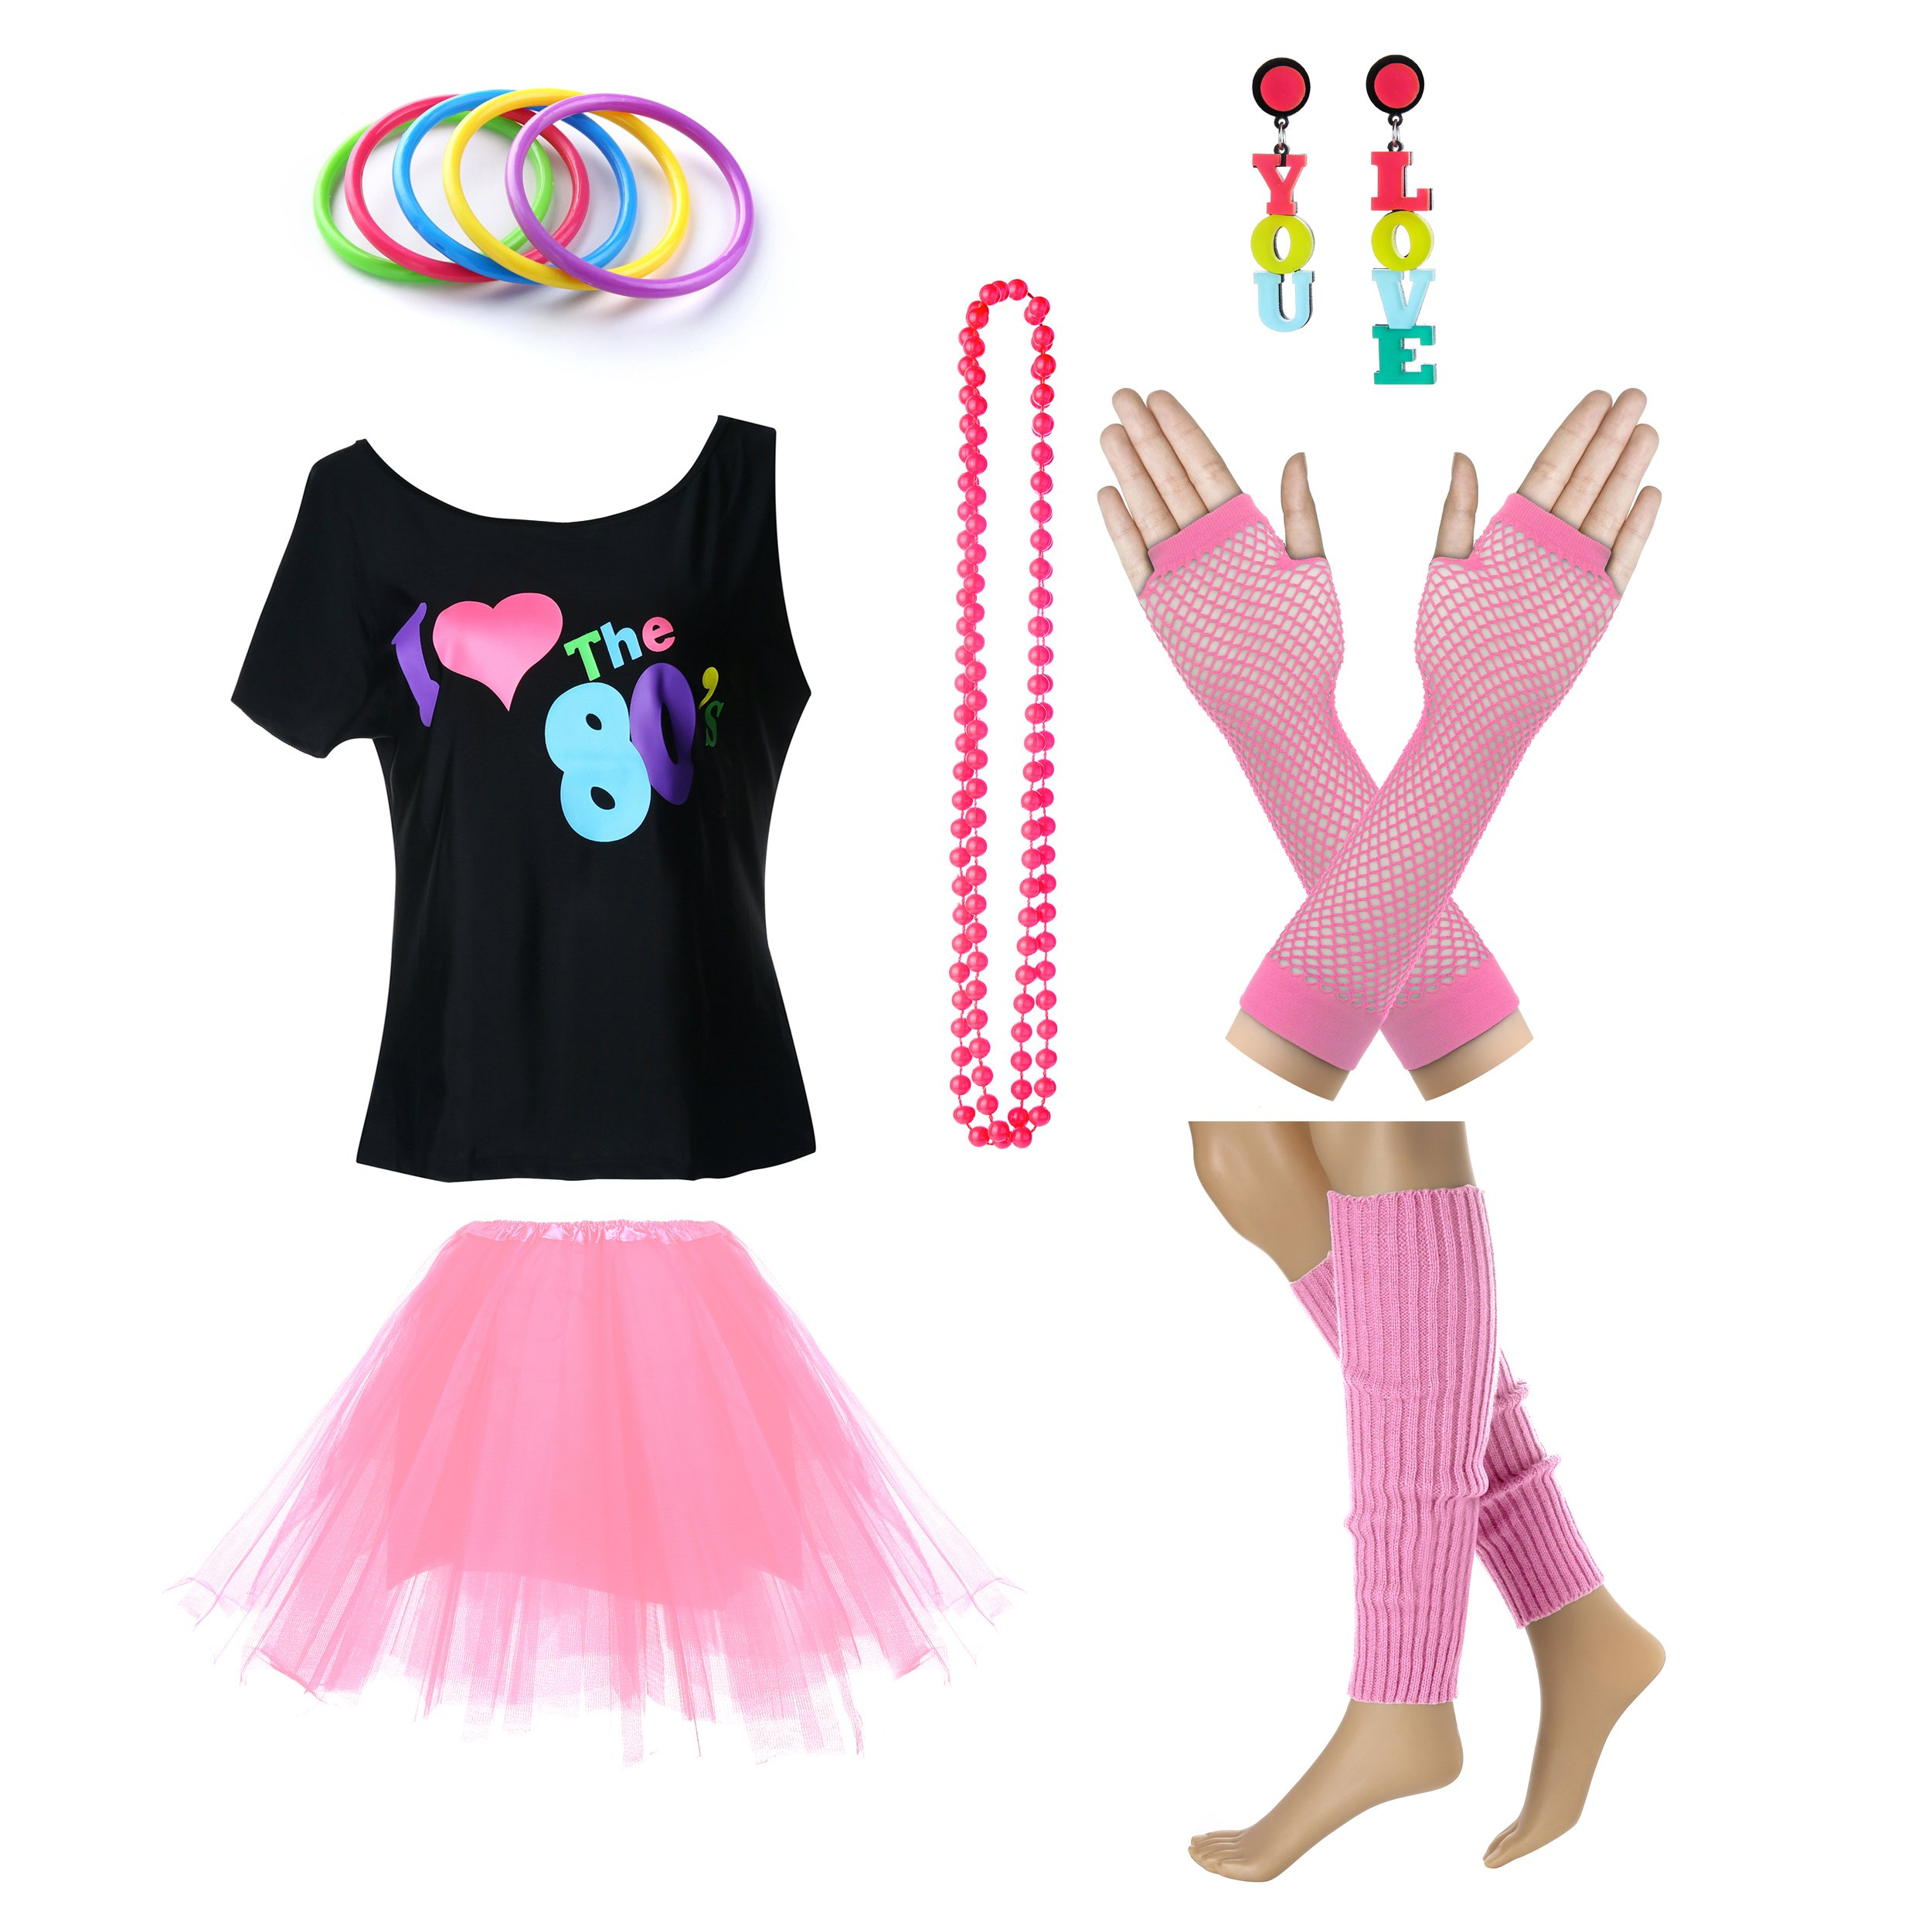 TDmall Clothing Series Women's I Love The 80's T-Shirt 80s Outfit accessories (M/L, Pink)